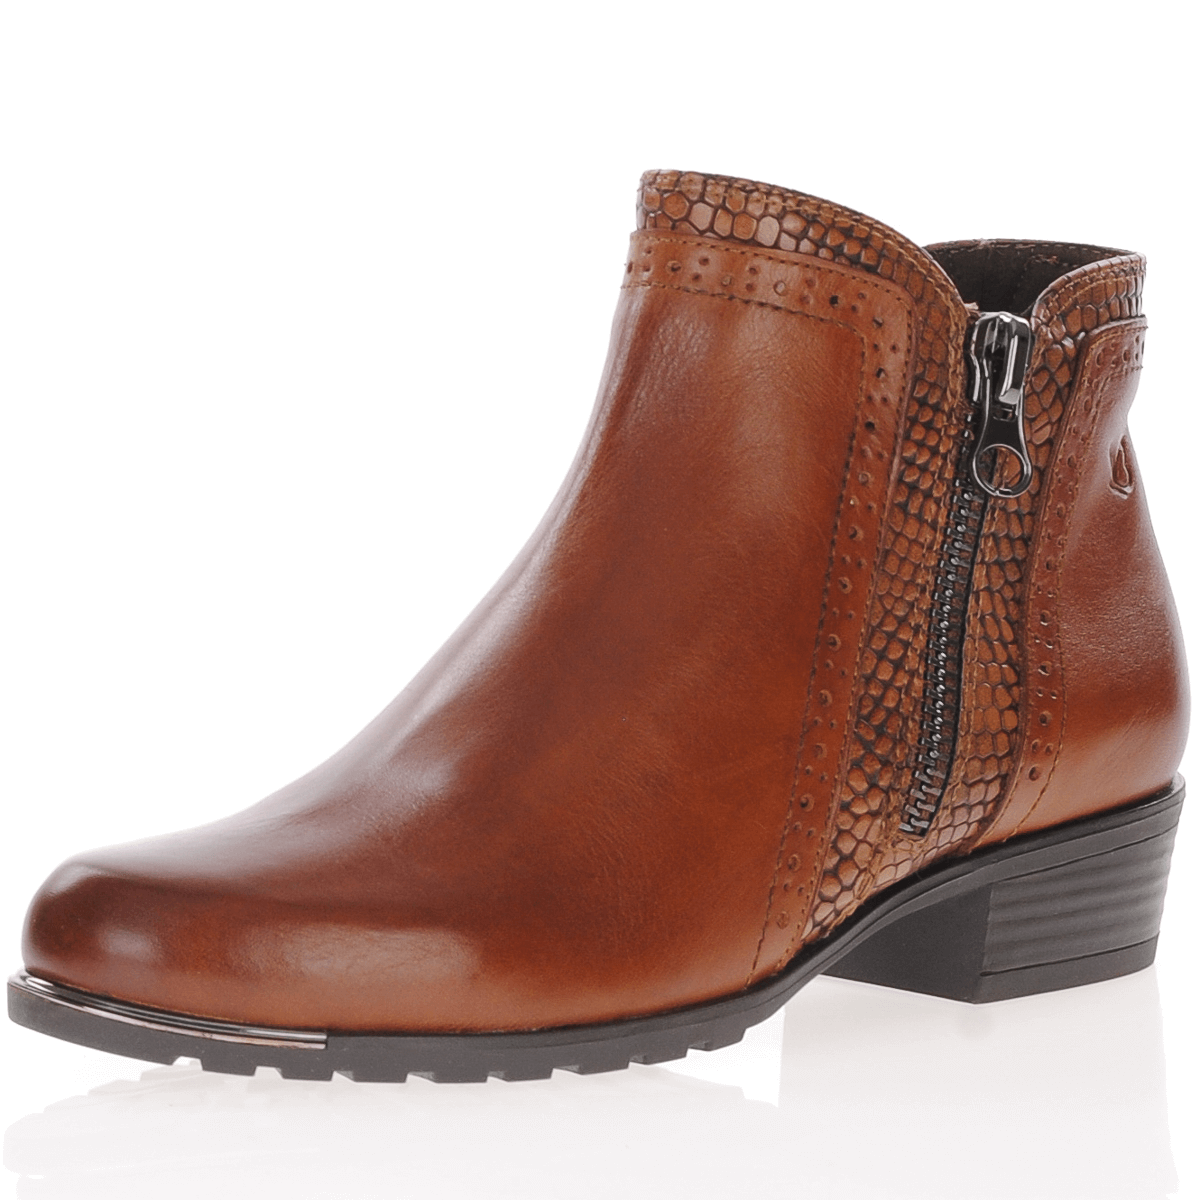 25403 Leather Ankle Boots, Cognac, The